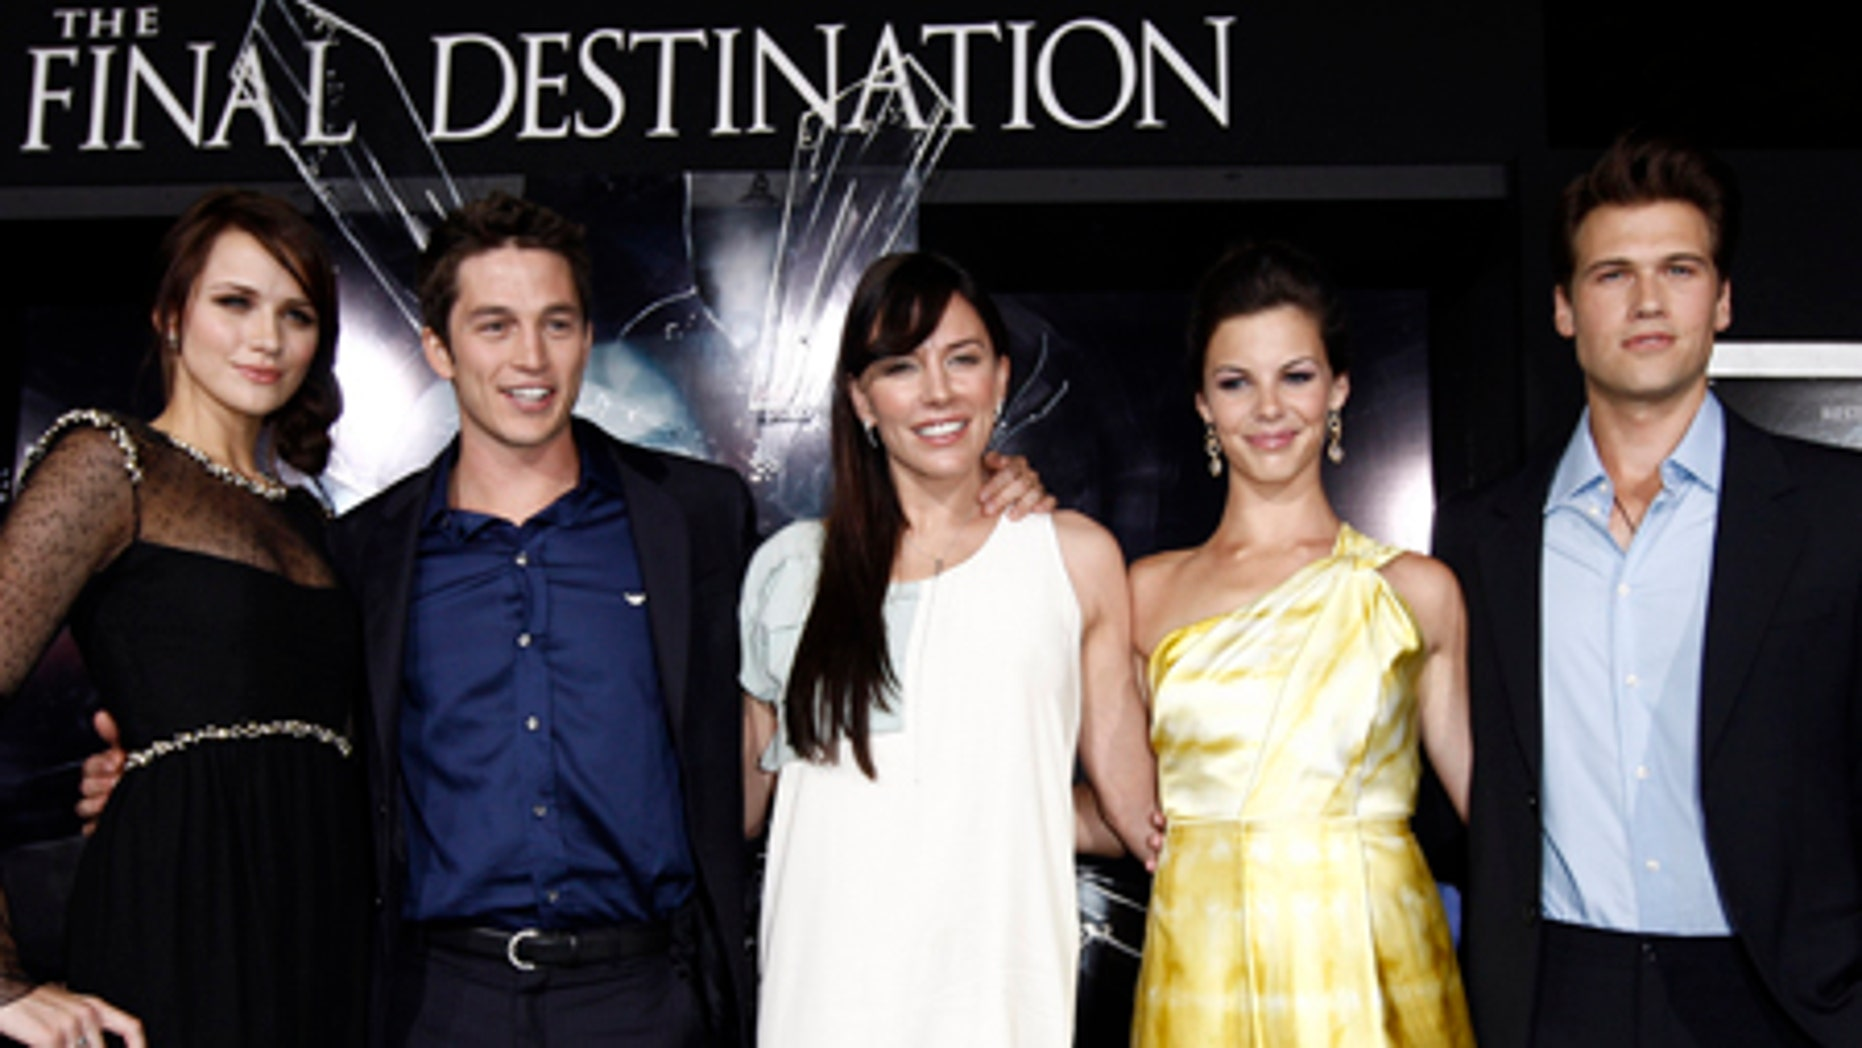 """From left, cast members Shantel VanSanten, Bobby Campo, Krista Allen, Haley Webb, and Nick Zano pose together at the premiere of """"The Final Destination"""" in Los Angeles on Thursday, Aug. 27, 2009.  (AP Photo/Matt Sayles)"""